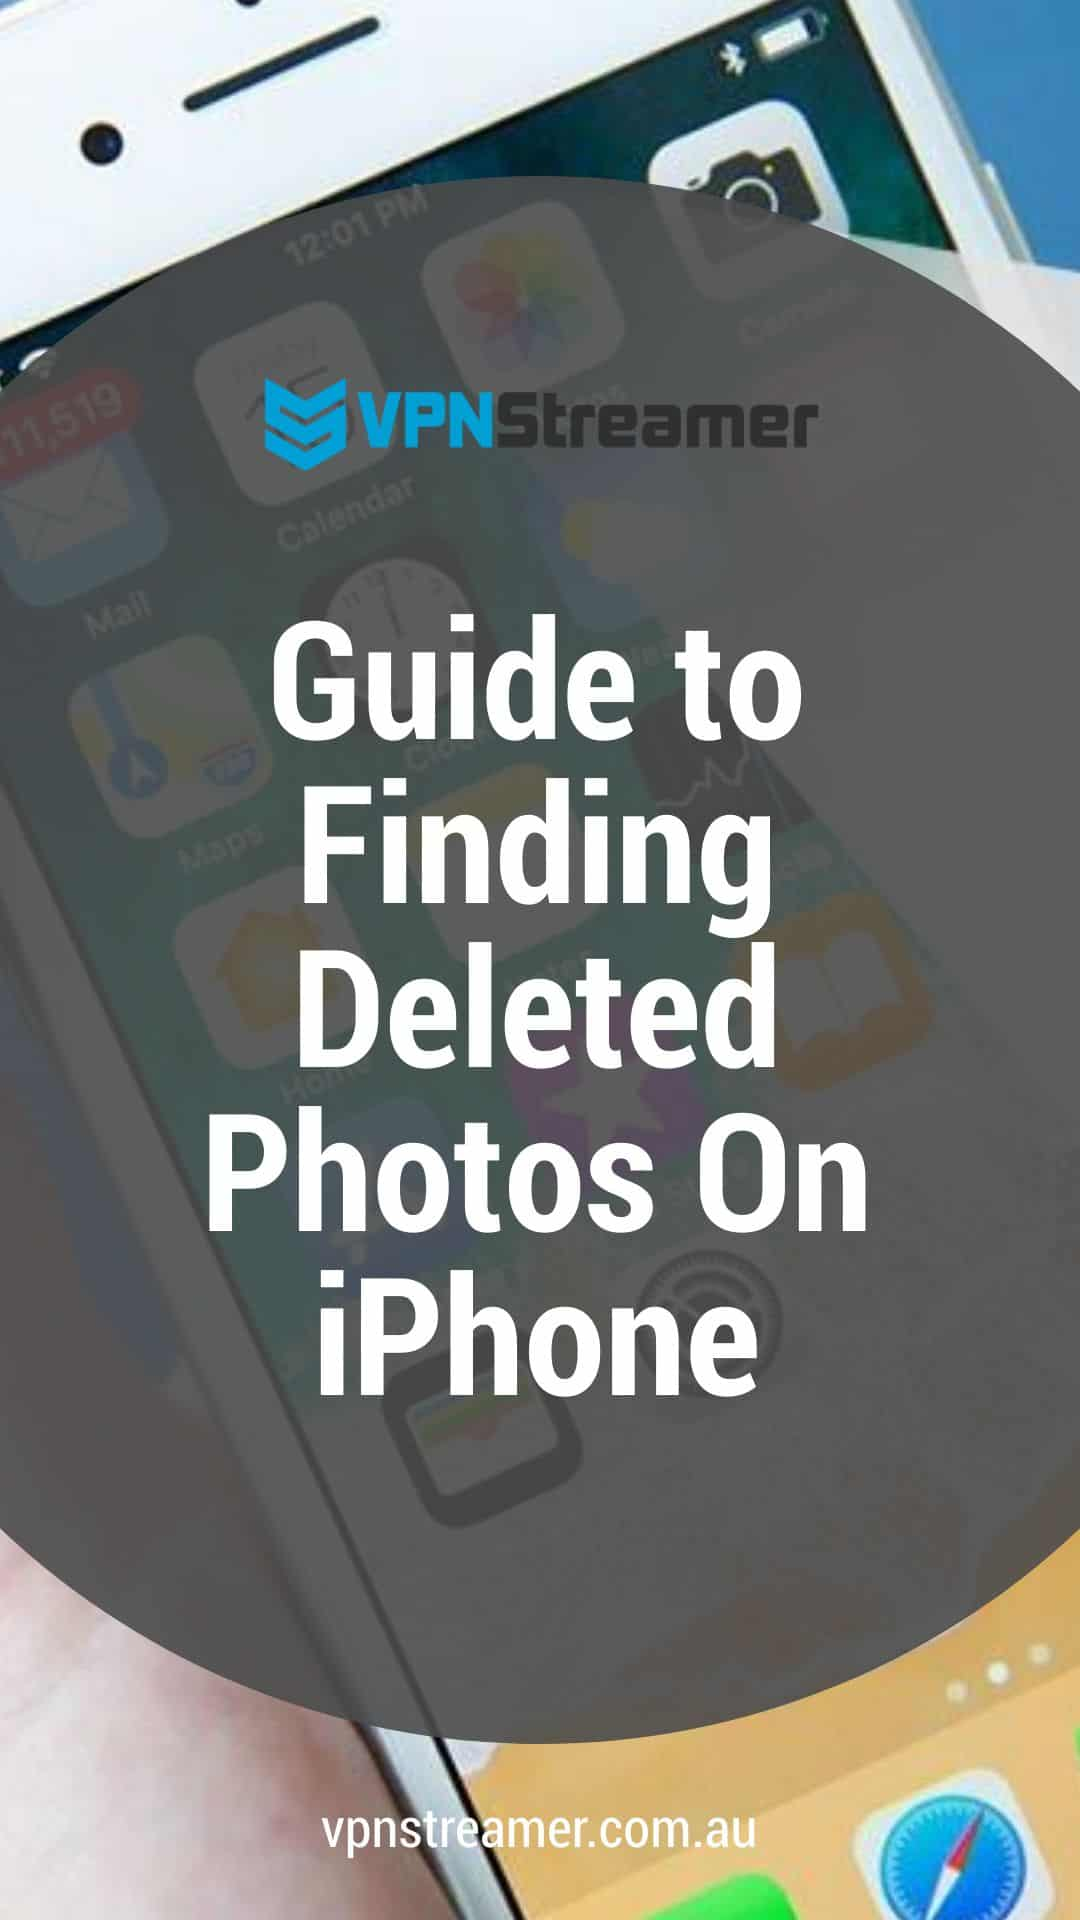 Guide to Finding Deleted Photos On iPhone